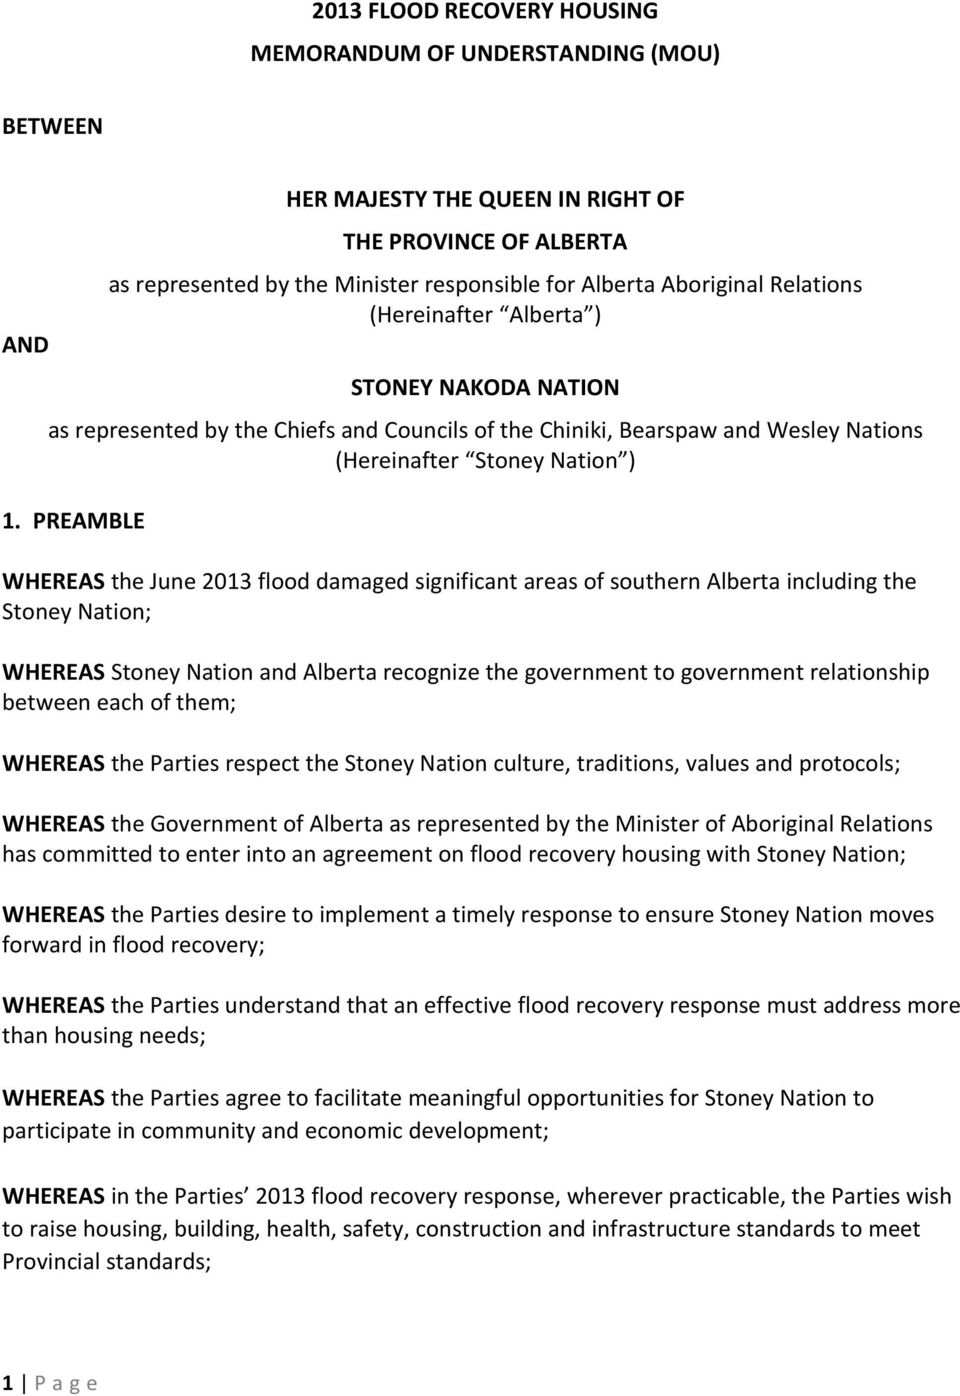 PREAMBLE WHEREAS the June 2013 flood damaged significant areas of southern Alberta including the Stoney Nation; WHEREAS Stoney Nation and Alberta recognize the government to government relationship